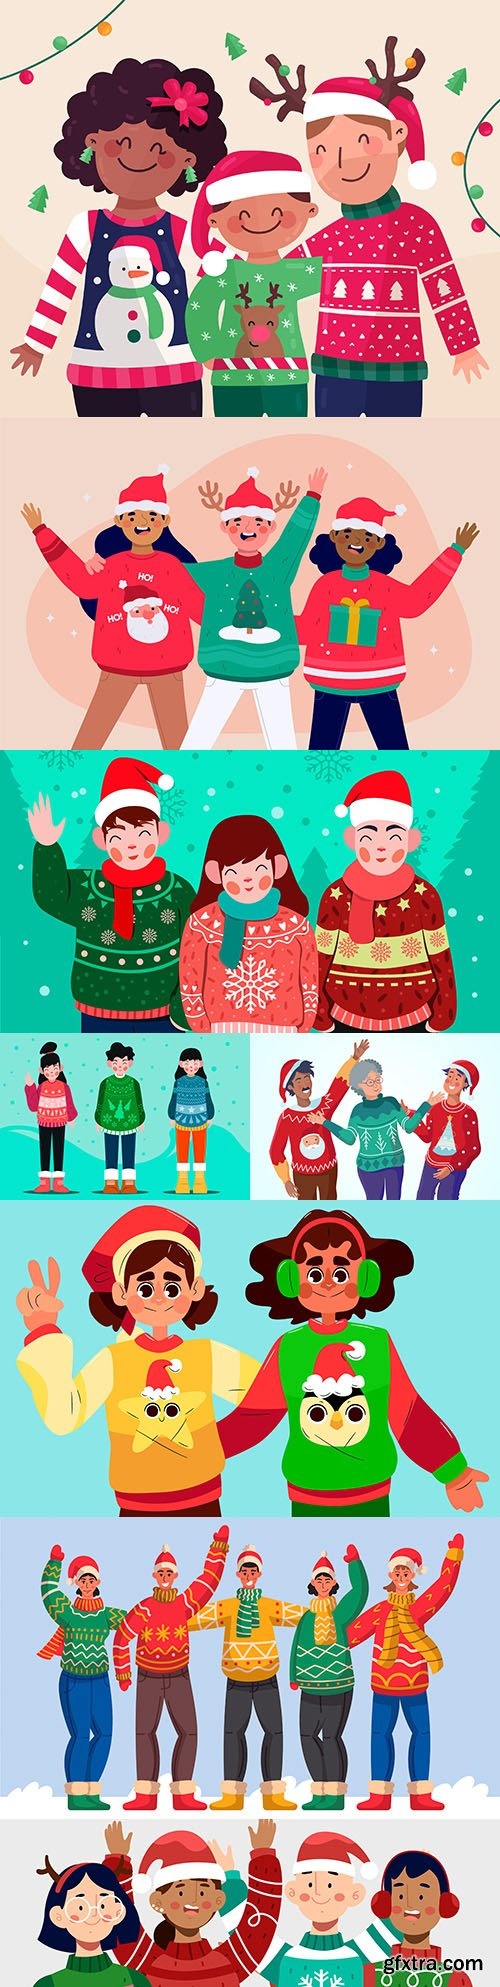 Happy people in knit sweaters with Christmas characters